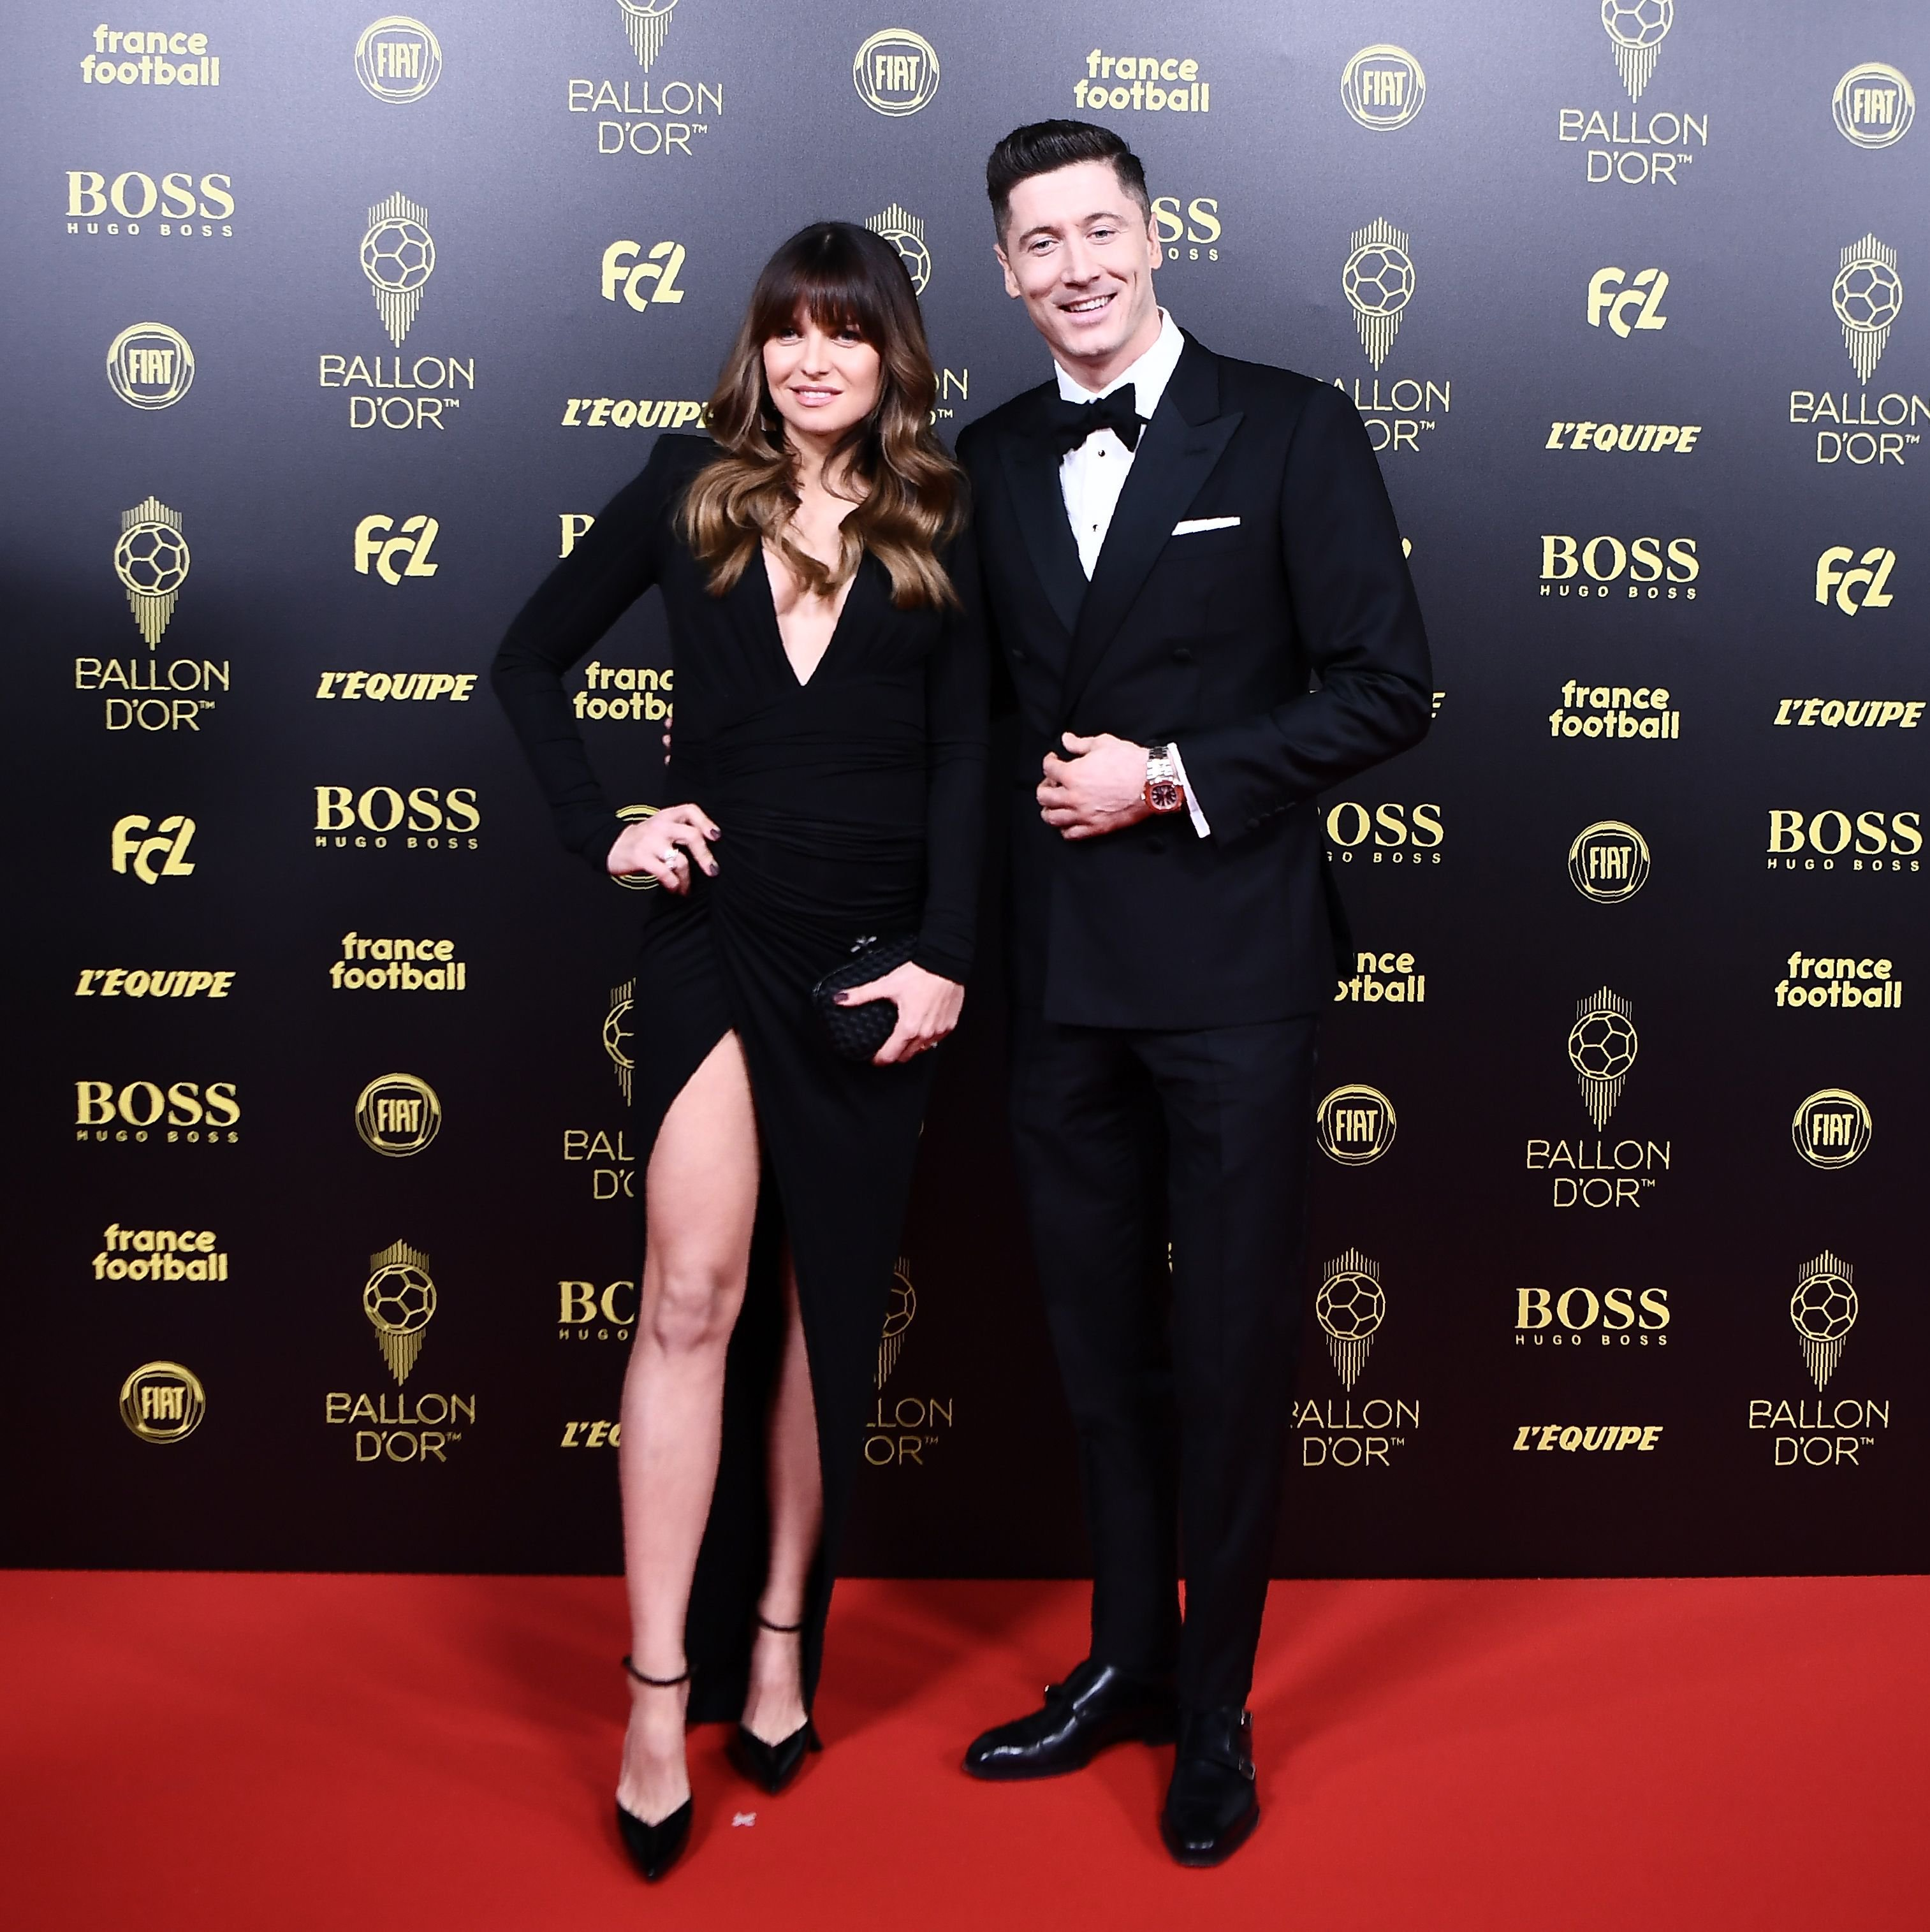 Lewandoski and wife (Anna Lewandowska)